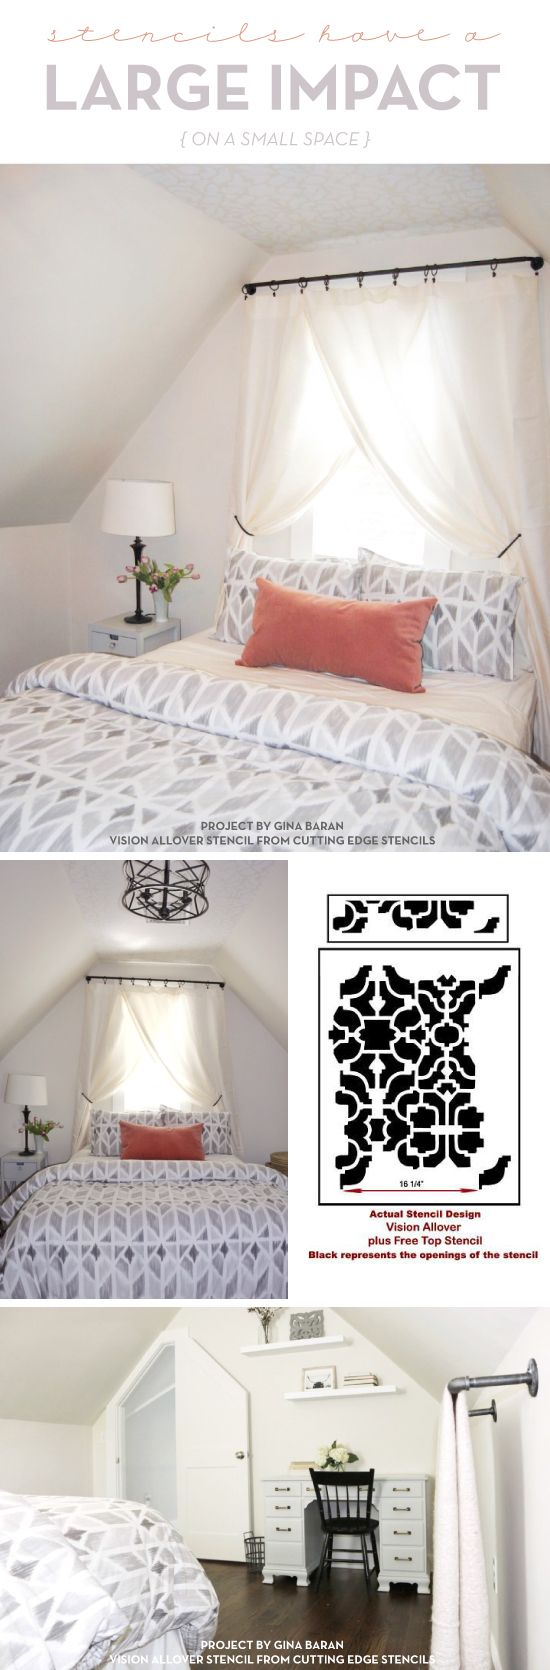 130 best stenciled painted ceilings images on pinterest cutting edge stencils shares a diy guest bedroom makeover featuring a stenciled ceiling using the vision